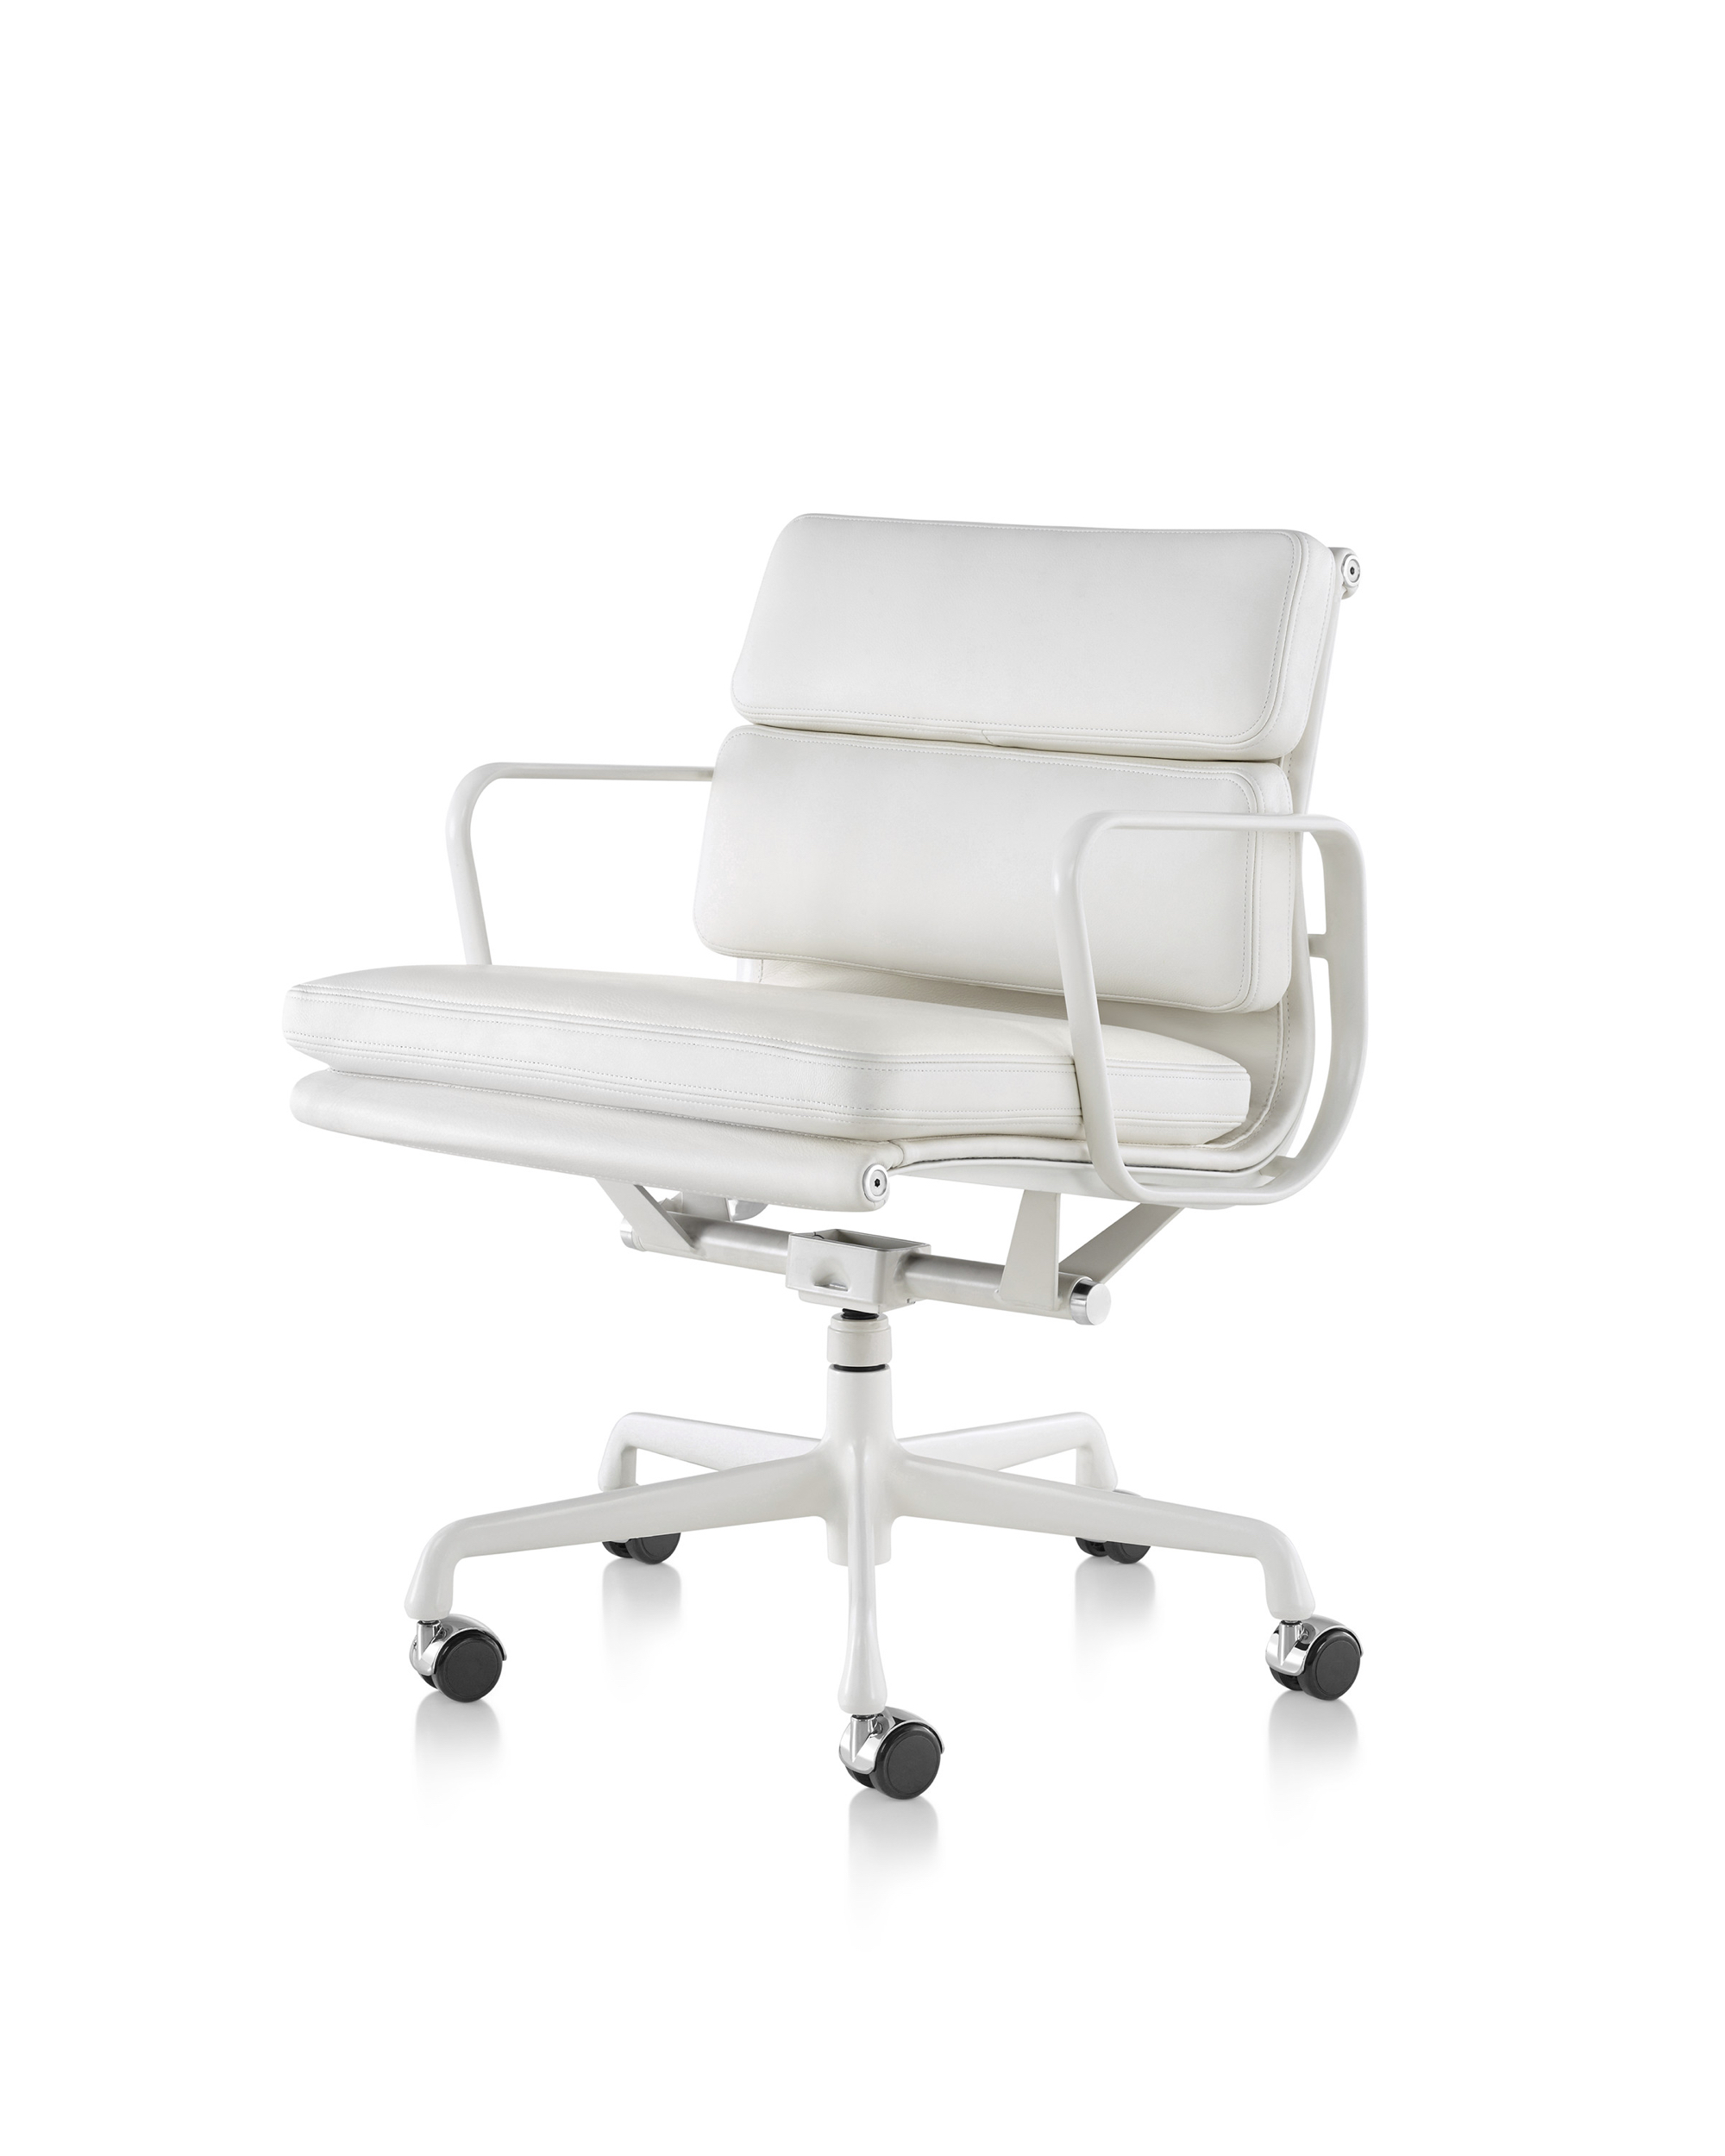 Eames Soft Pad Management Chair 20 High End Workplace Chairs And Seats